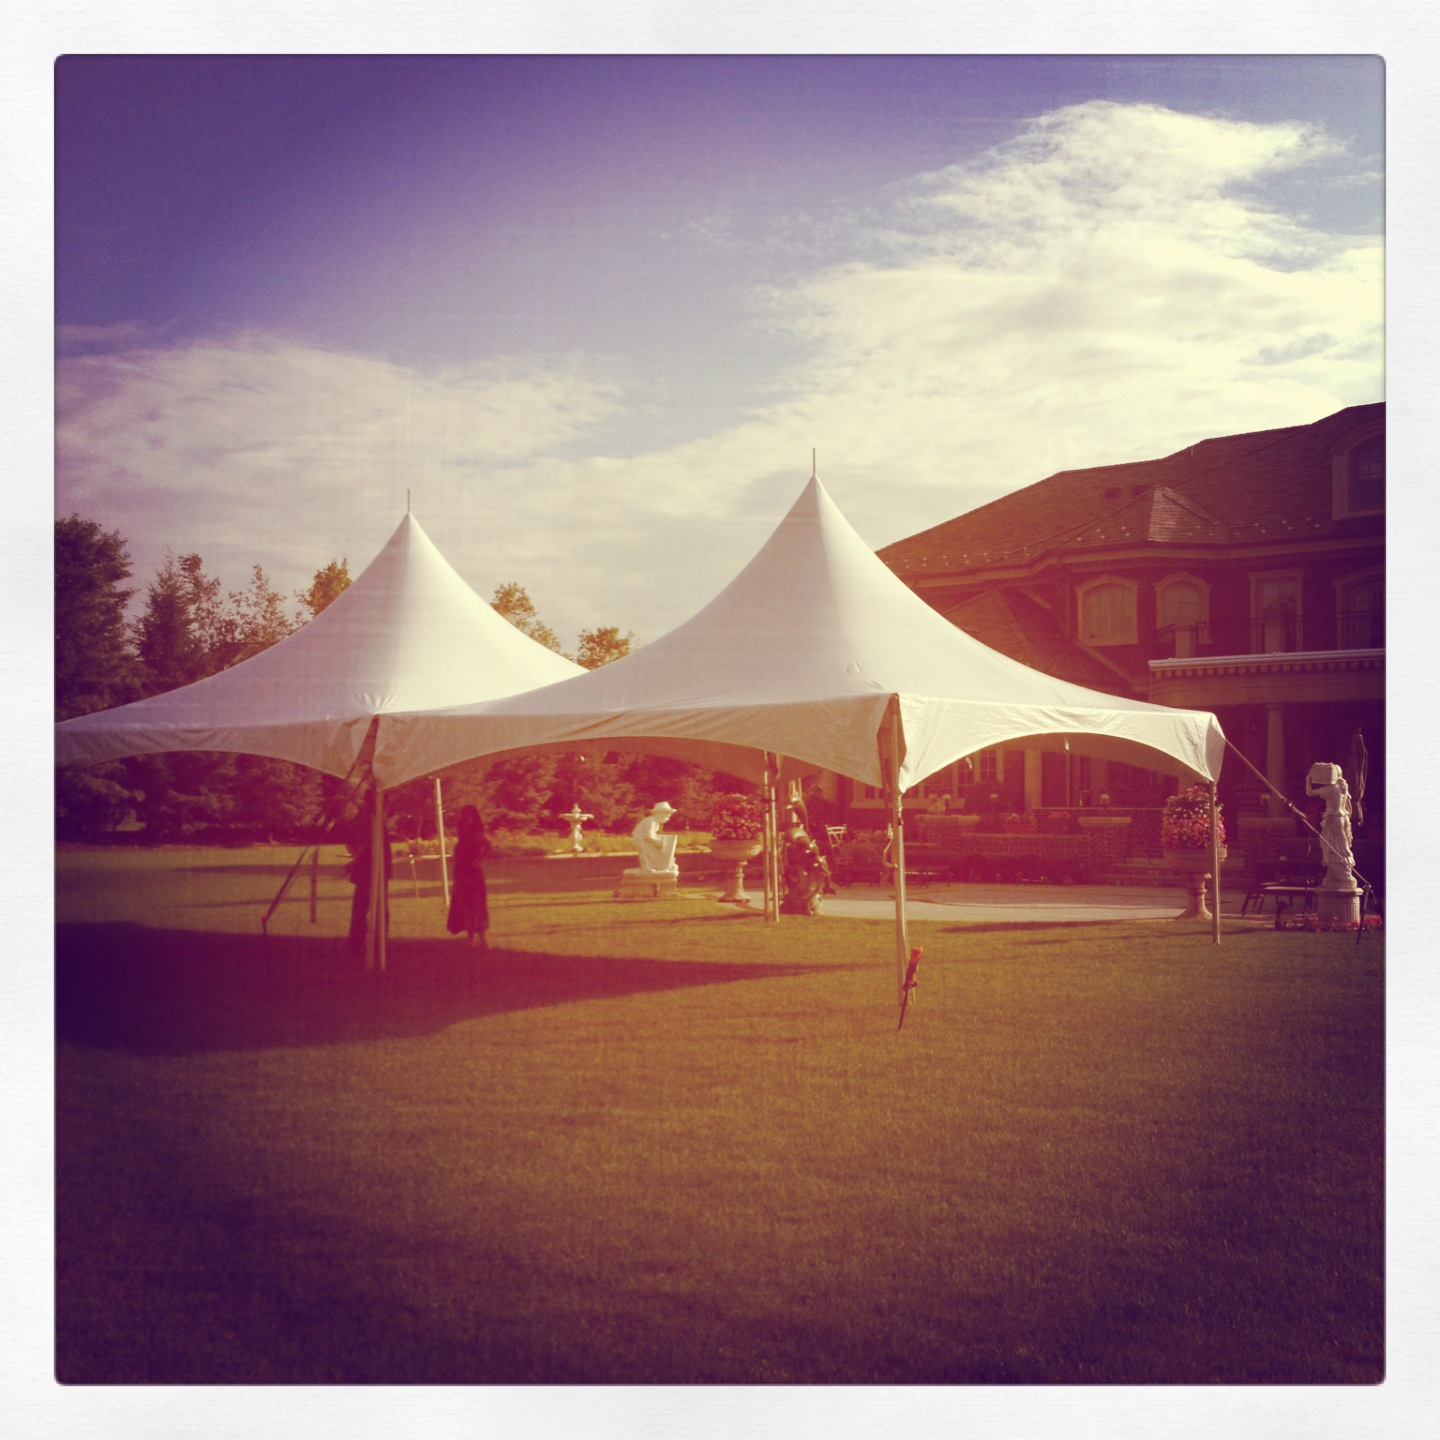 Sky Tent Rental & Inflatables image 0